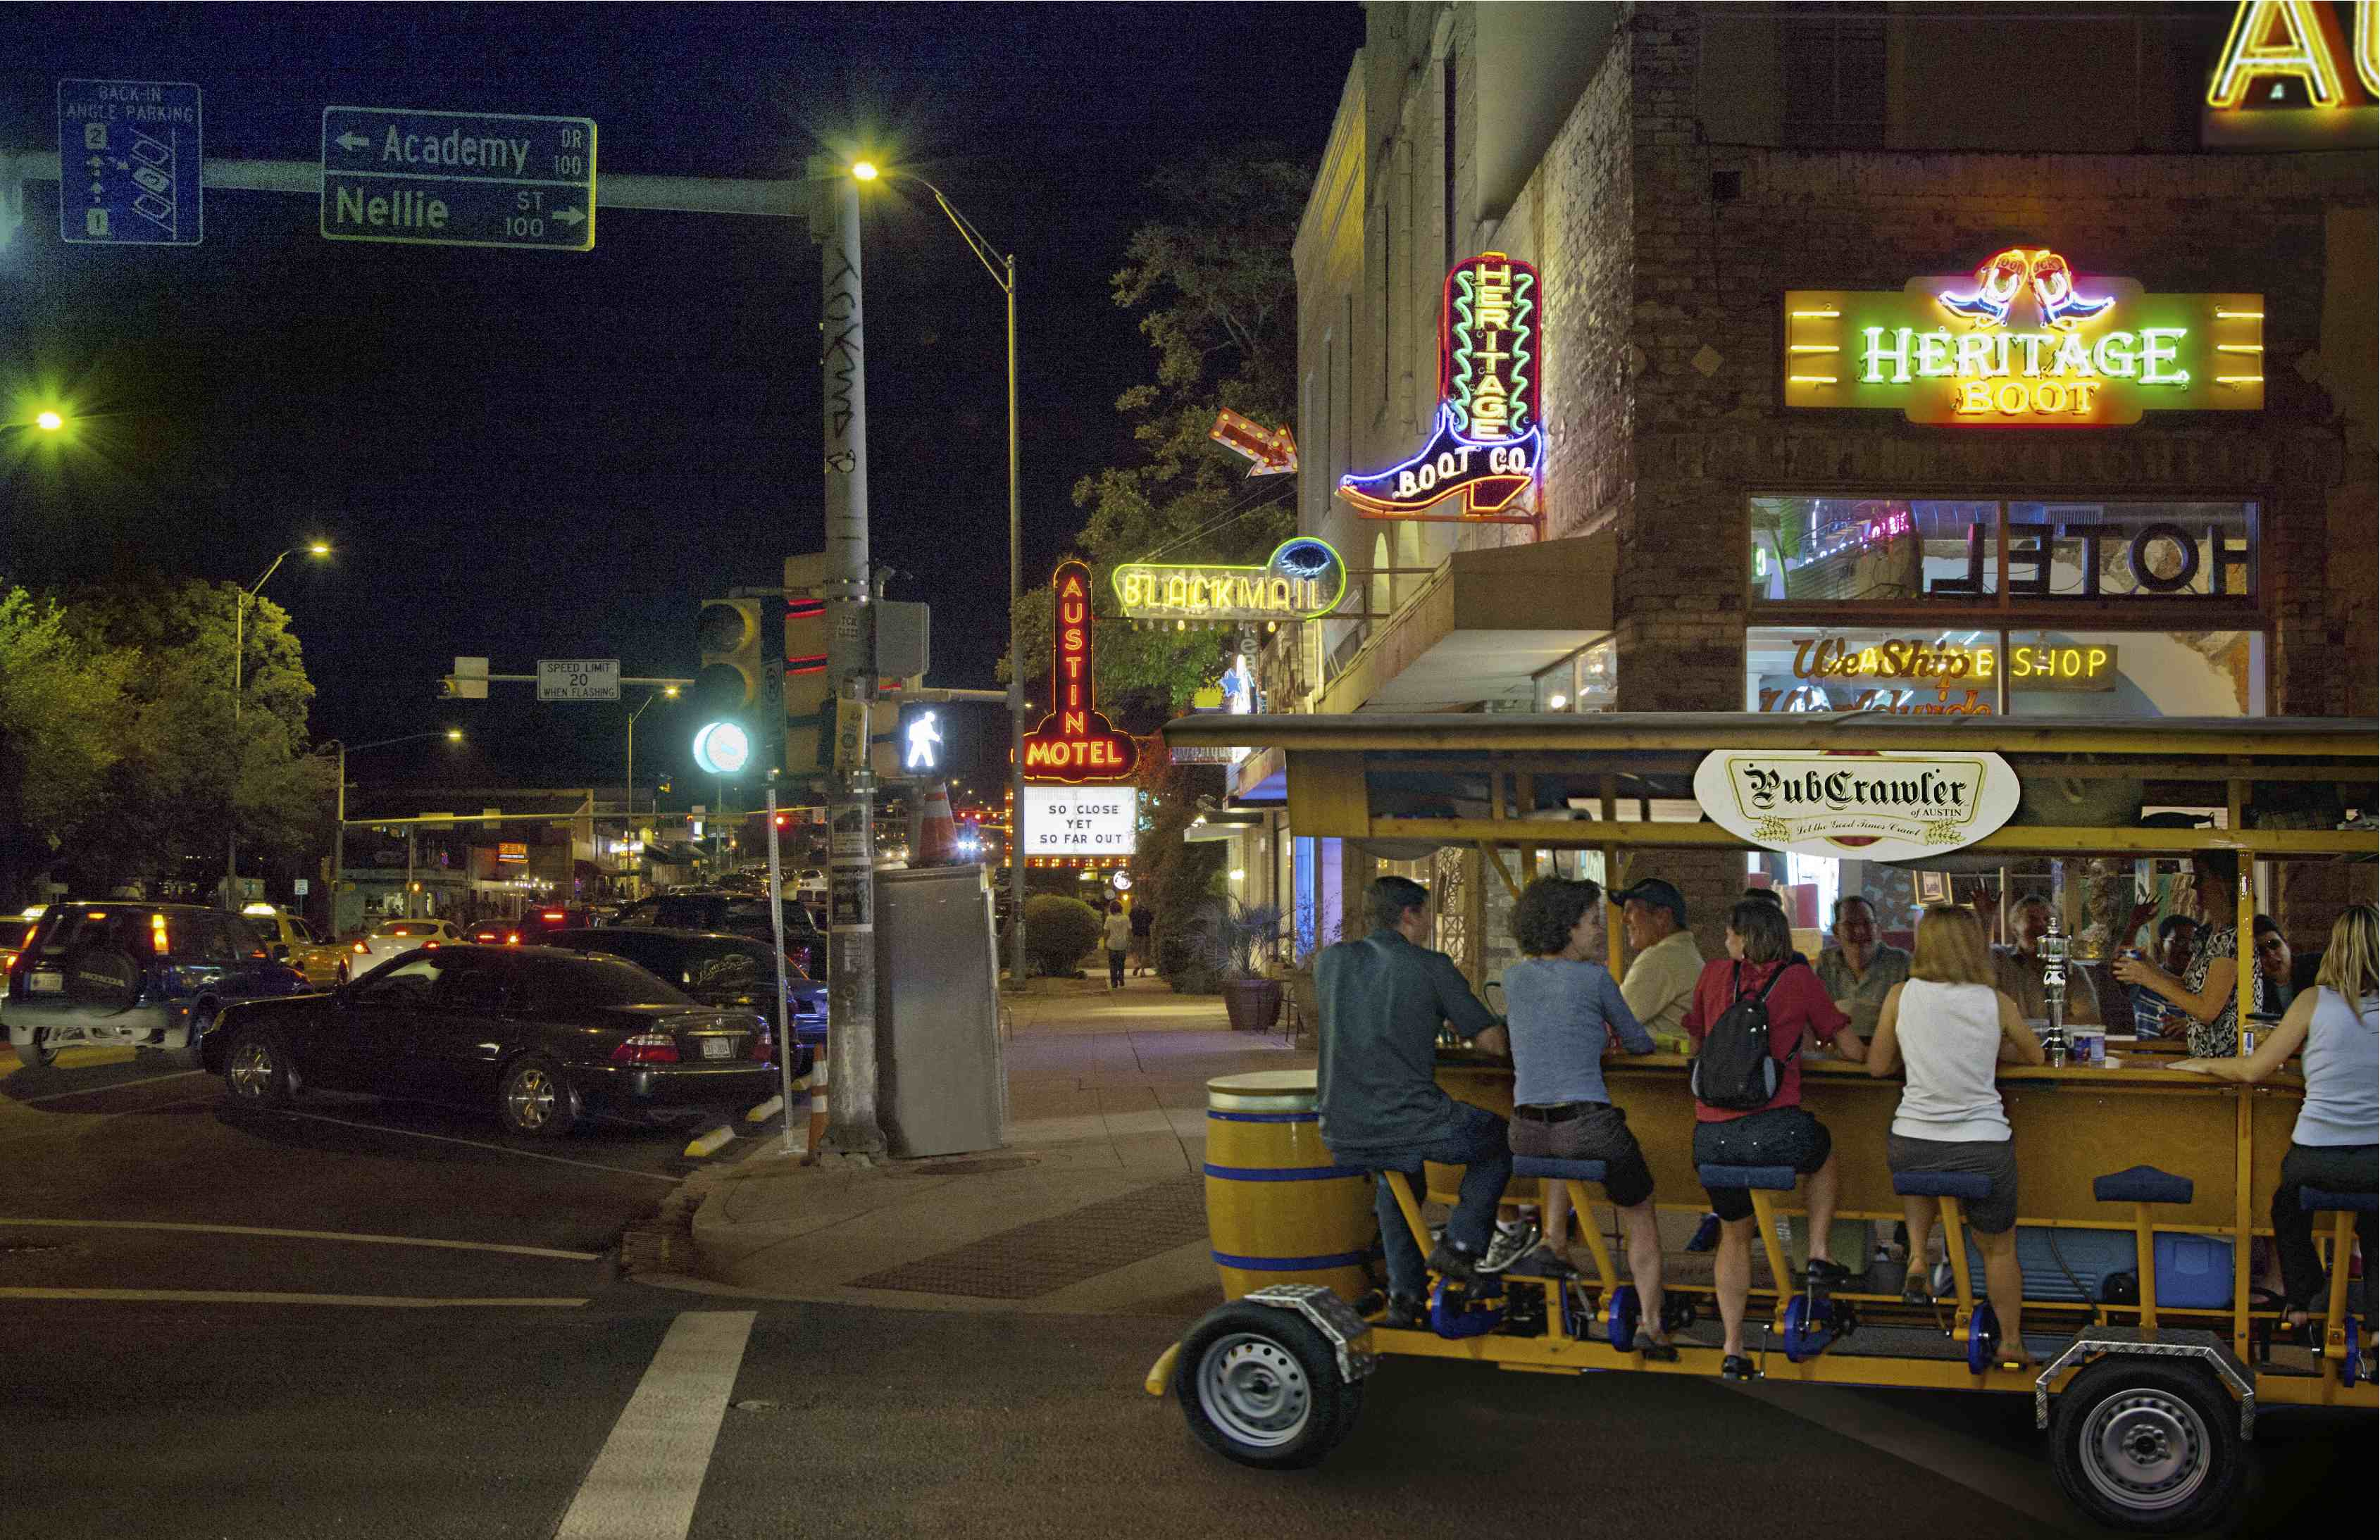 The Pubcrawler party bike in Austin, Texas